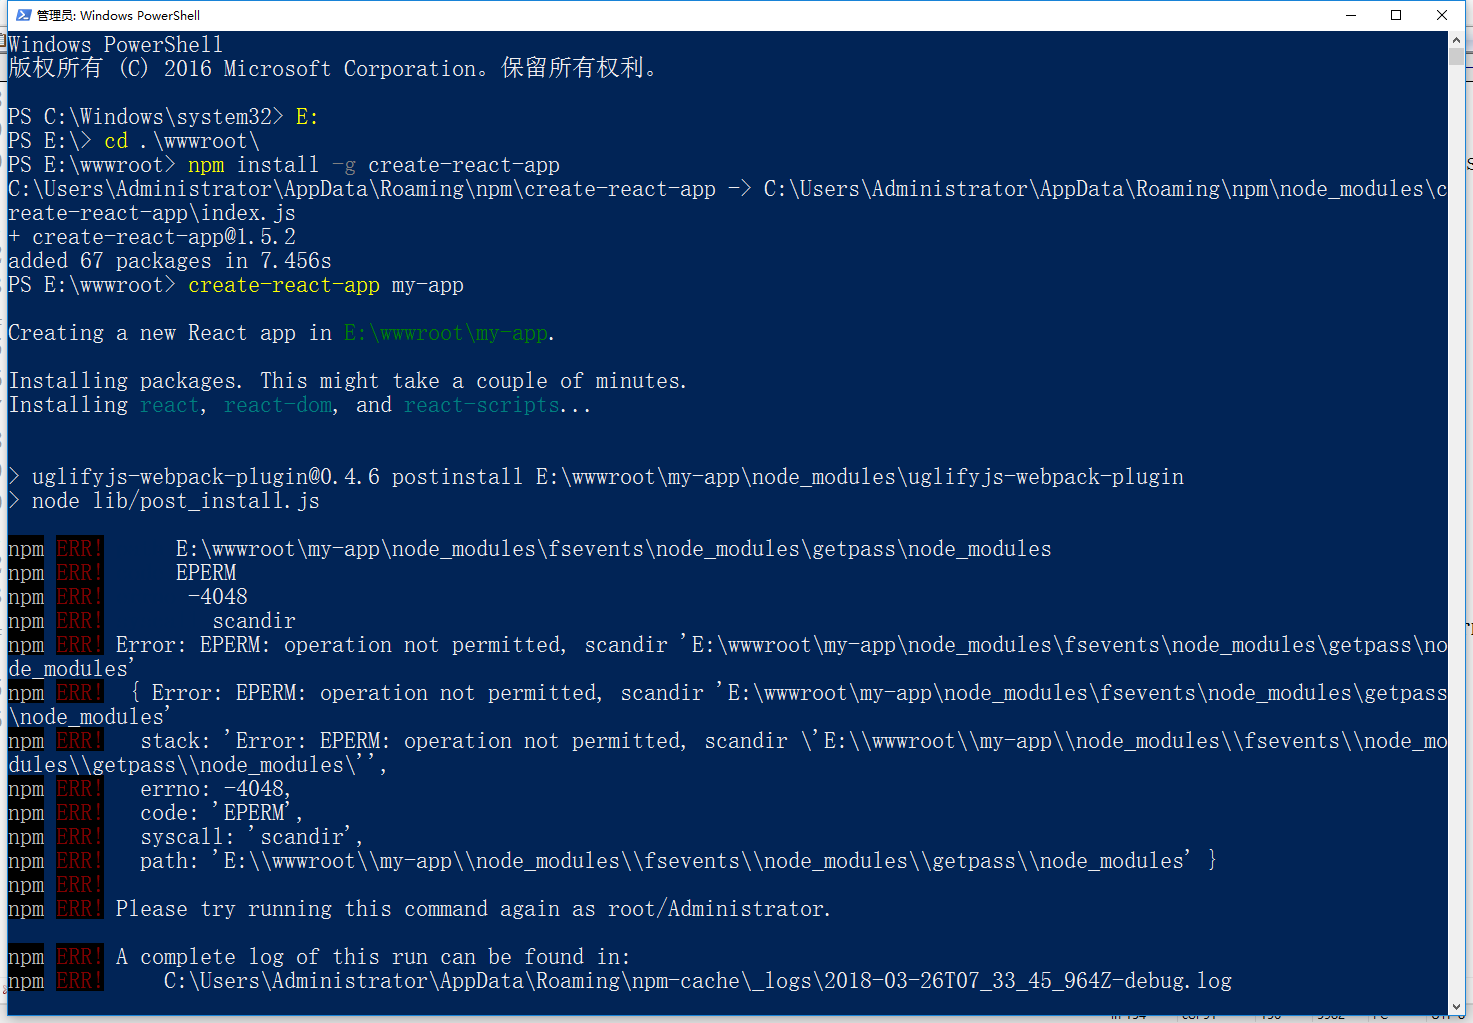 以管理员身份运行 Windwos PowerShell,依次执行如下命令,报错:npm ERR! Error: EPERM: operation not permitted